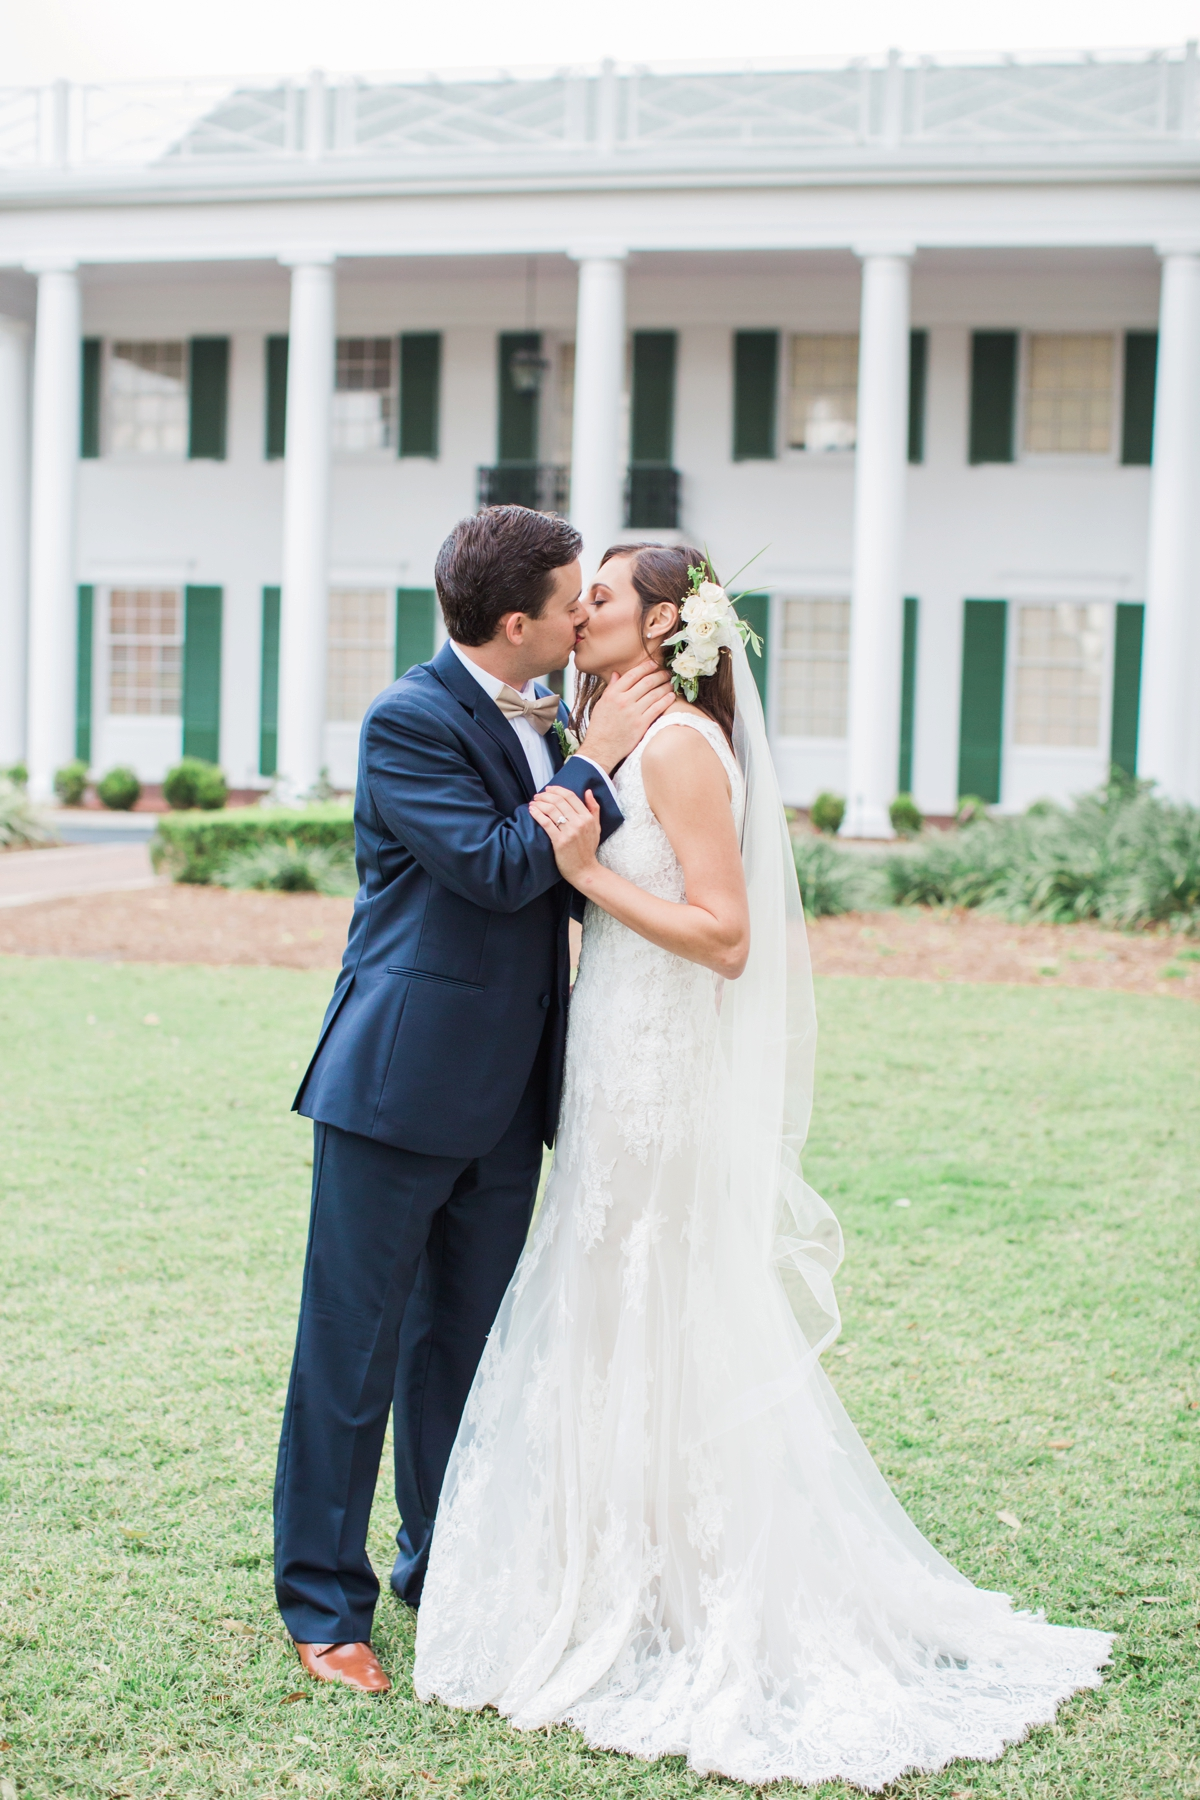 Natalie Broach Photography Gavin&Gabby Timuquana Country Club Wedding